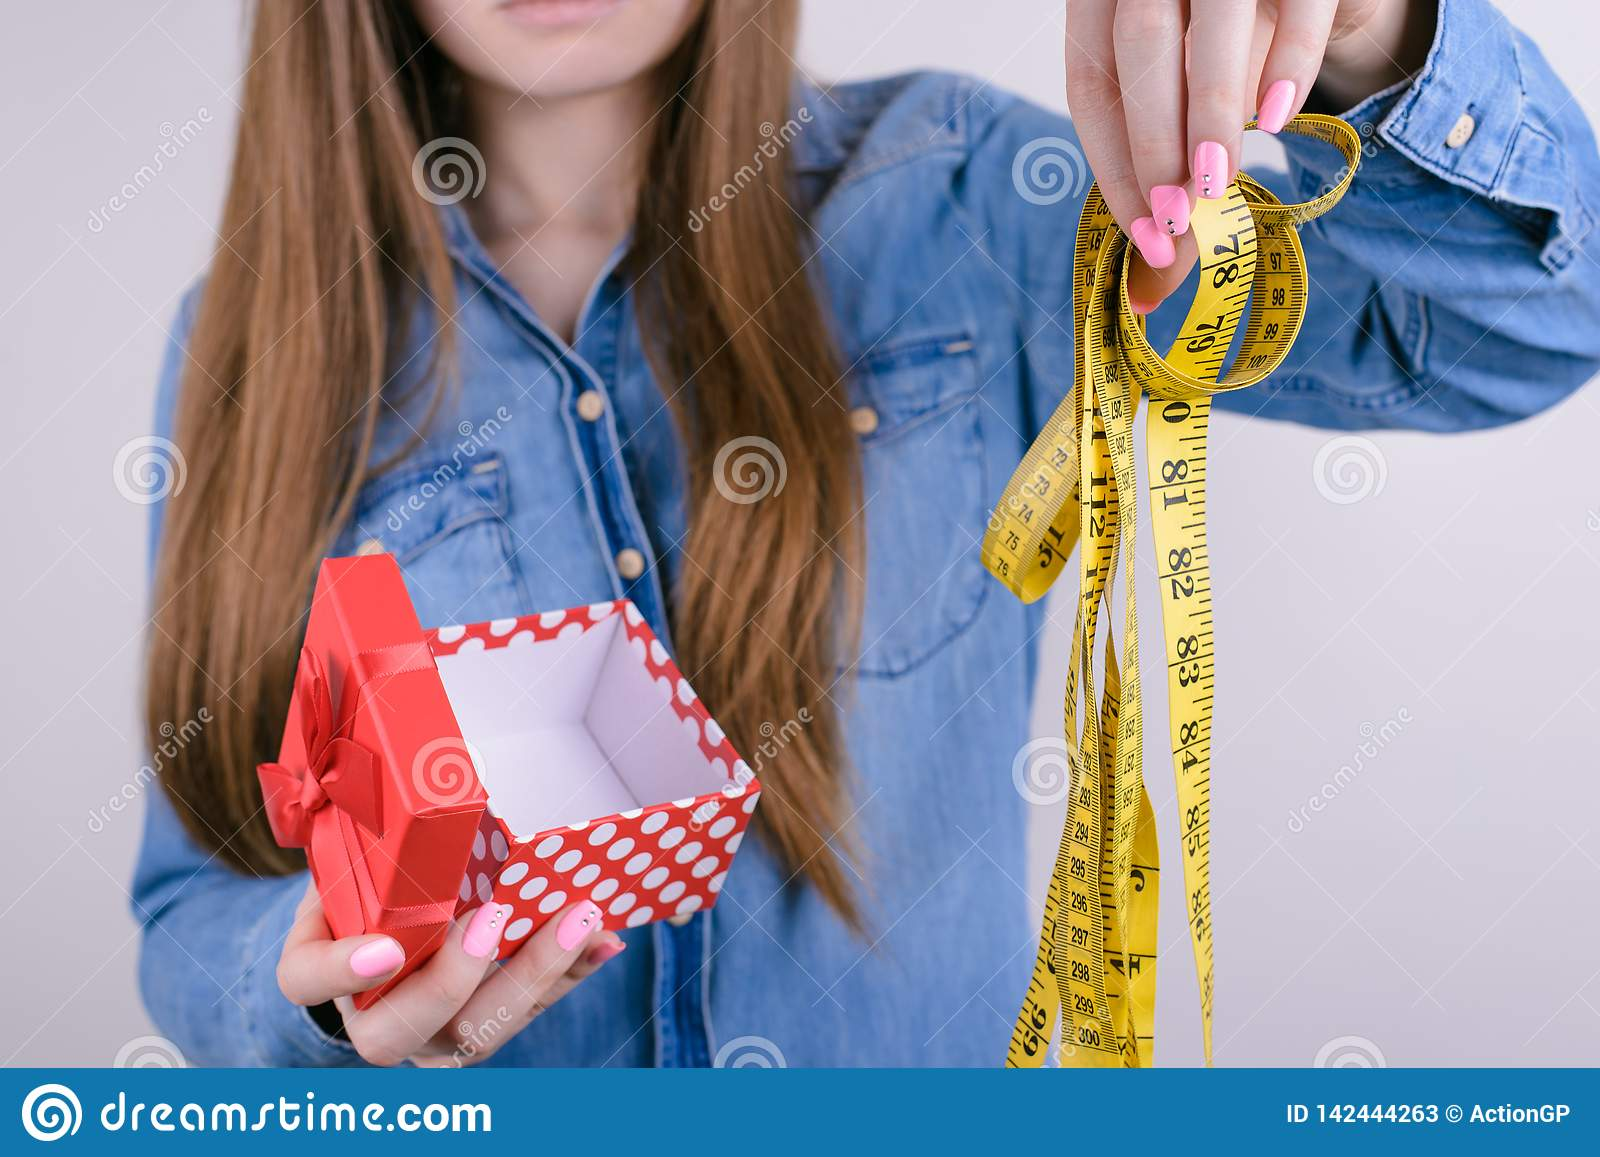 Bad unwanted unwished gift for people lady person concept. Cropped closeup photo of disappointed confused frustrated student